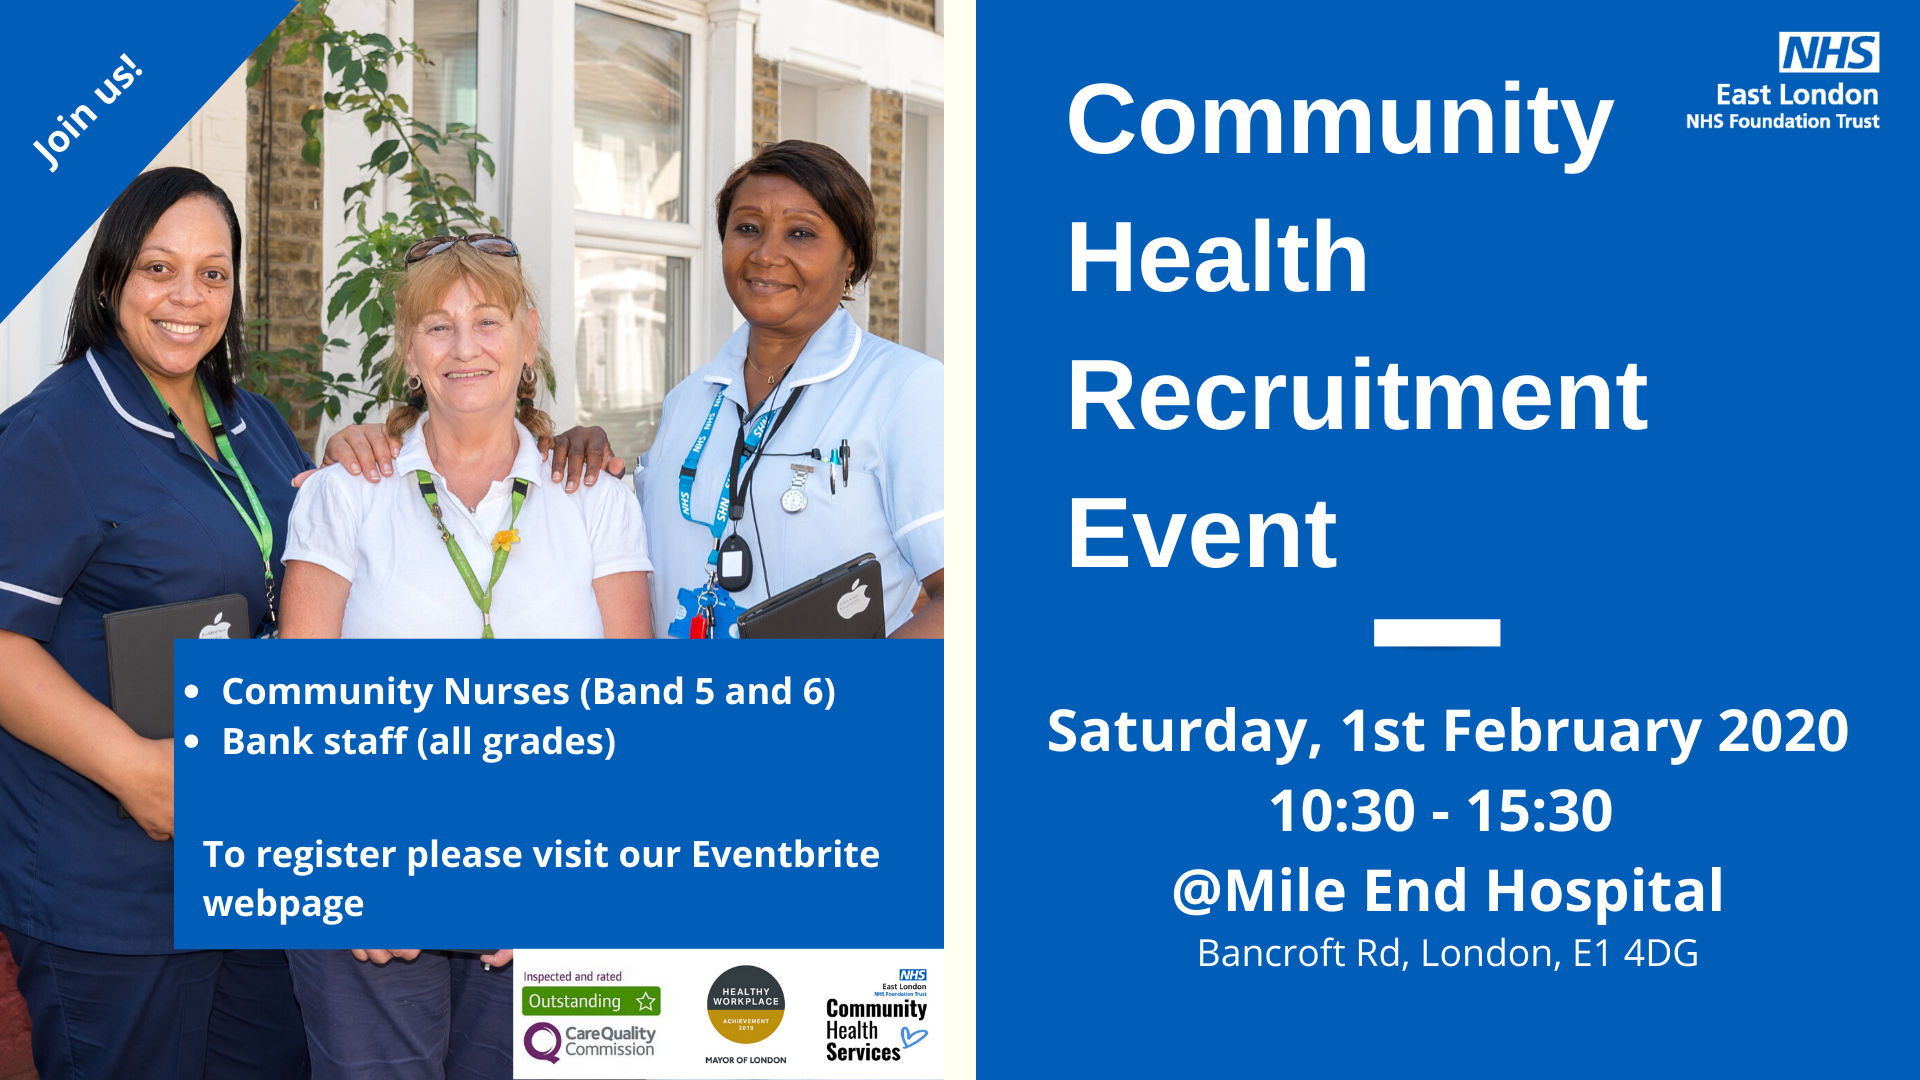 Community Health Recruitment Event